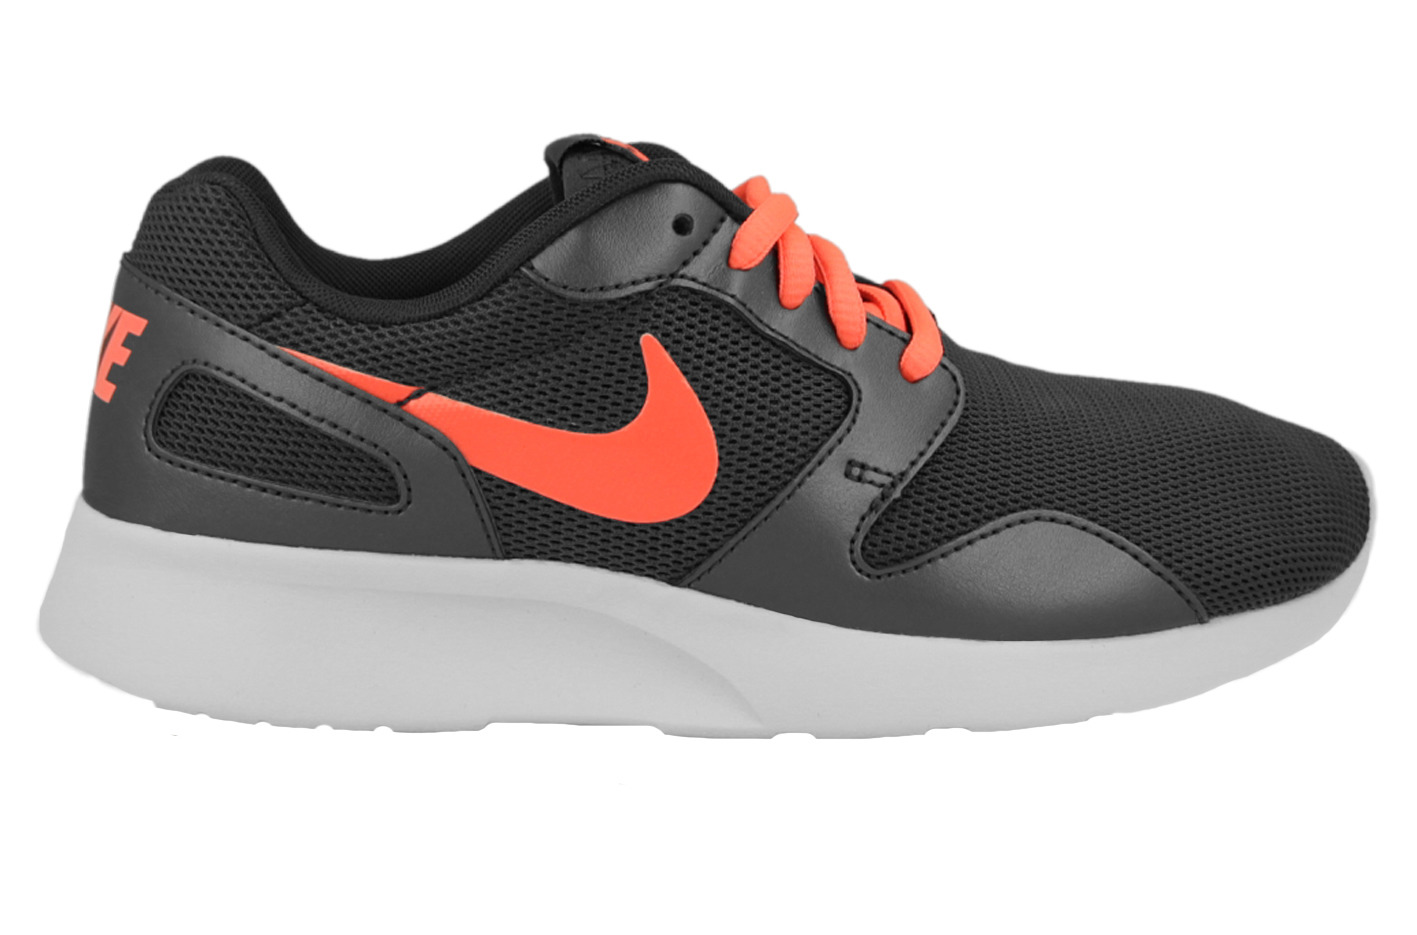 best sneakers cfcd3 ea1c4 ... coupon code for 747495 061 buty wmns nike kaishi 654845 061 rÓne  rozmiary 5158438571 oficjalne archiwum